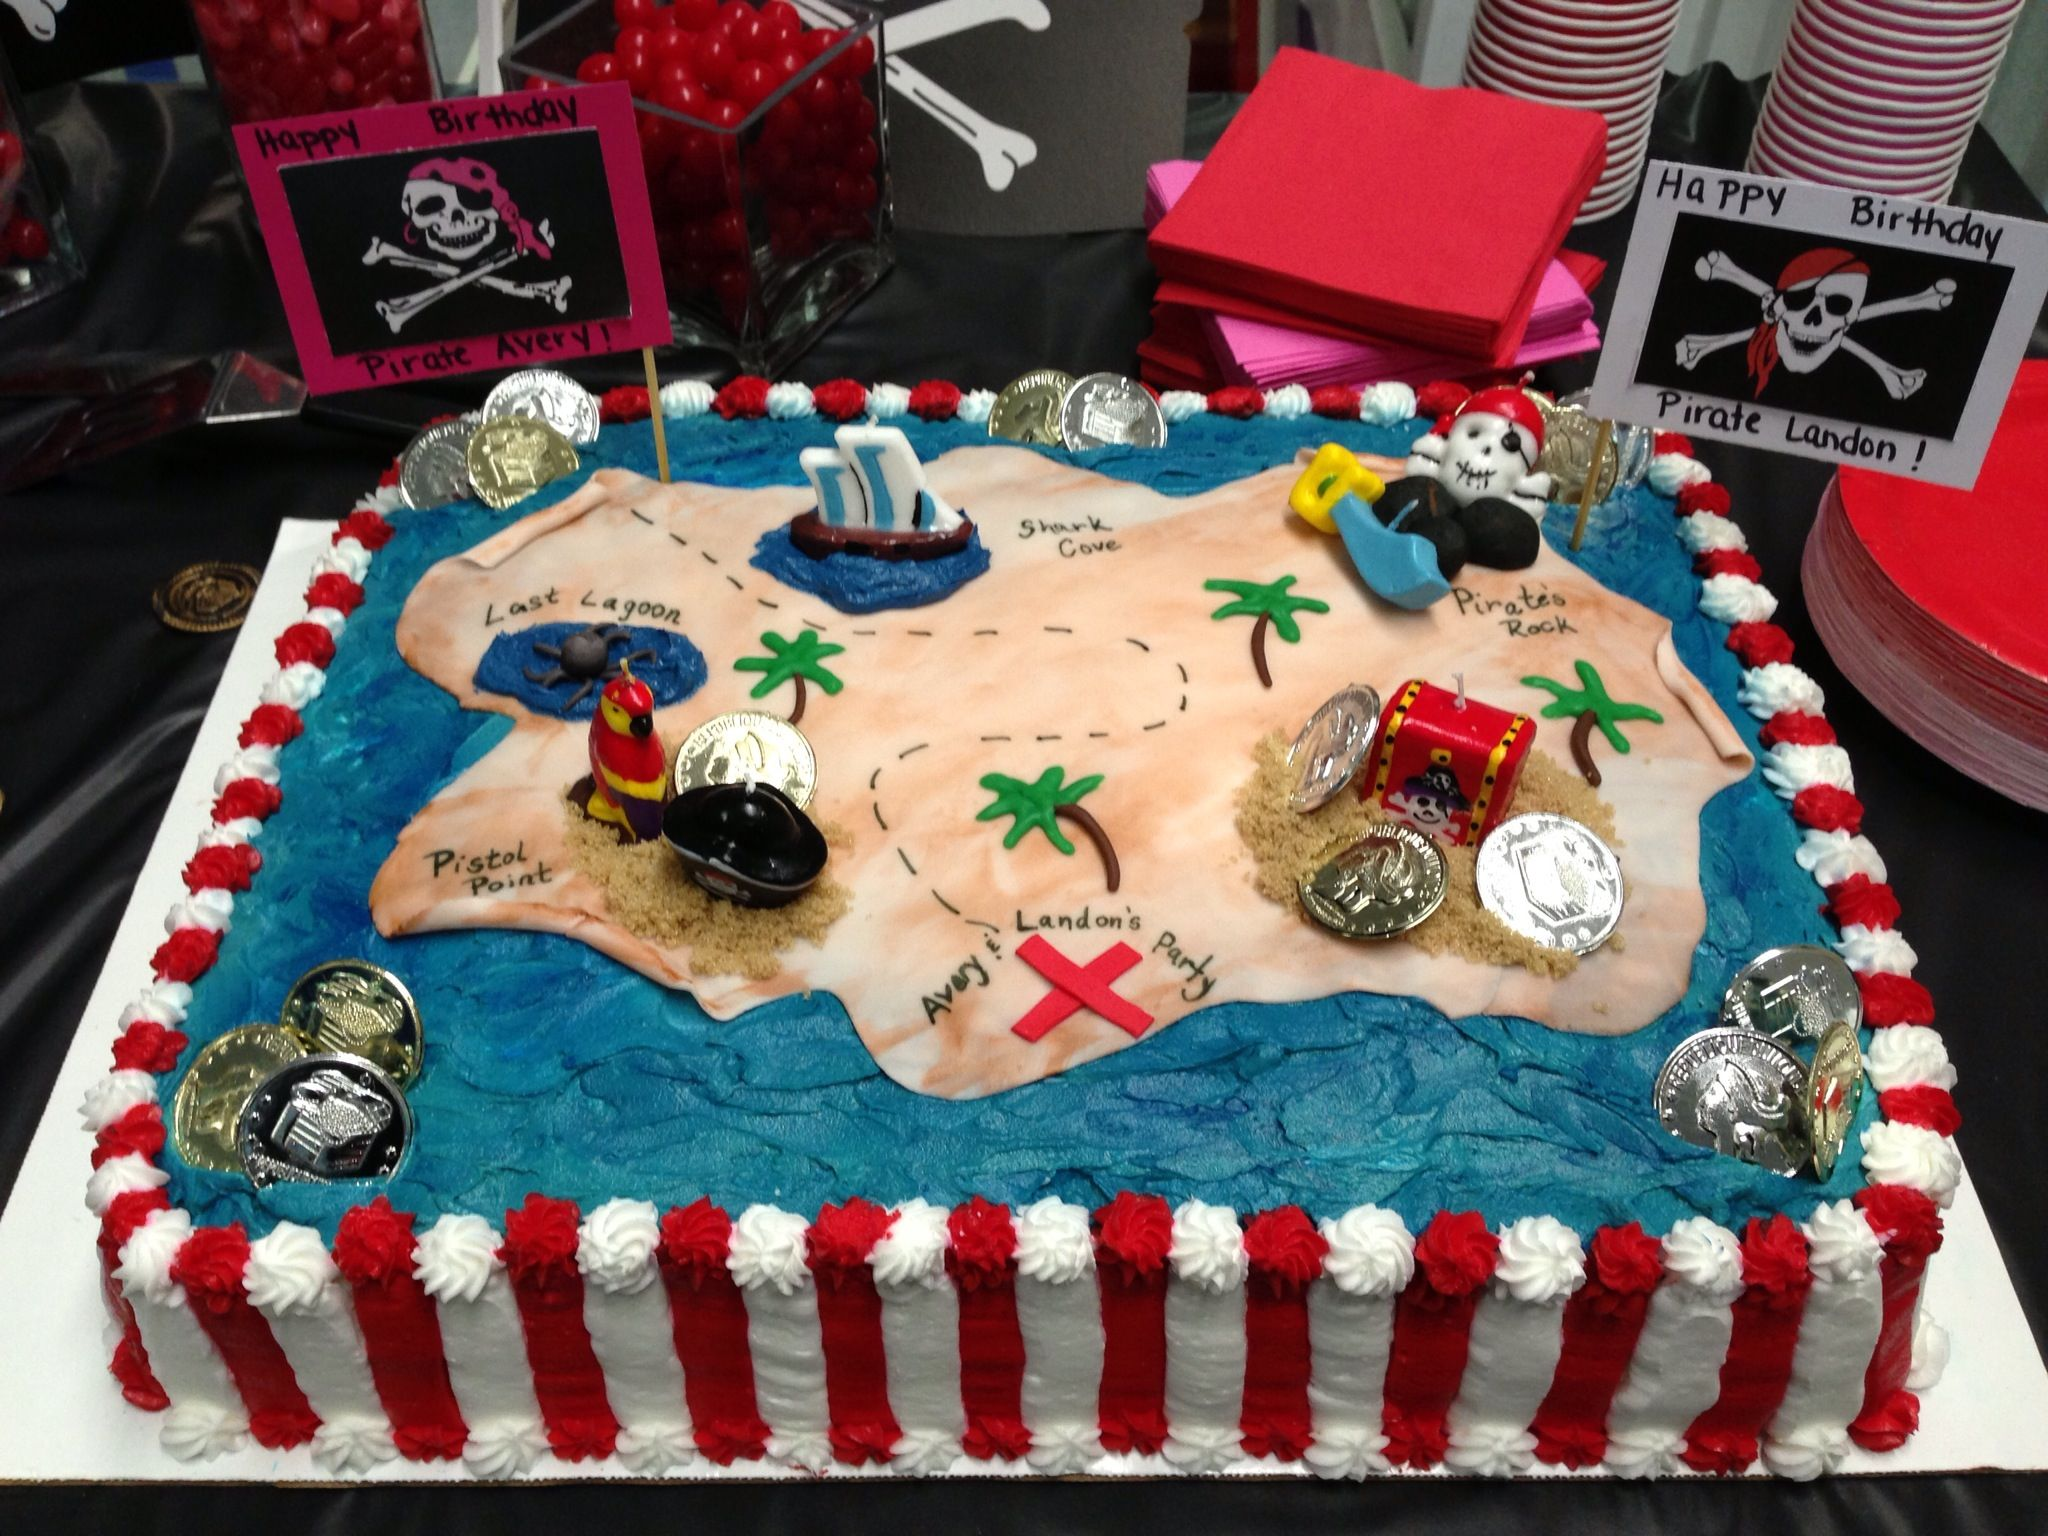 Cake ideas on pinterest pirate cakes marshmallow fondant and - Pirate Cake How To